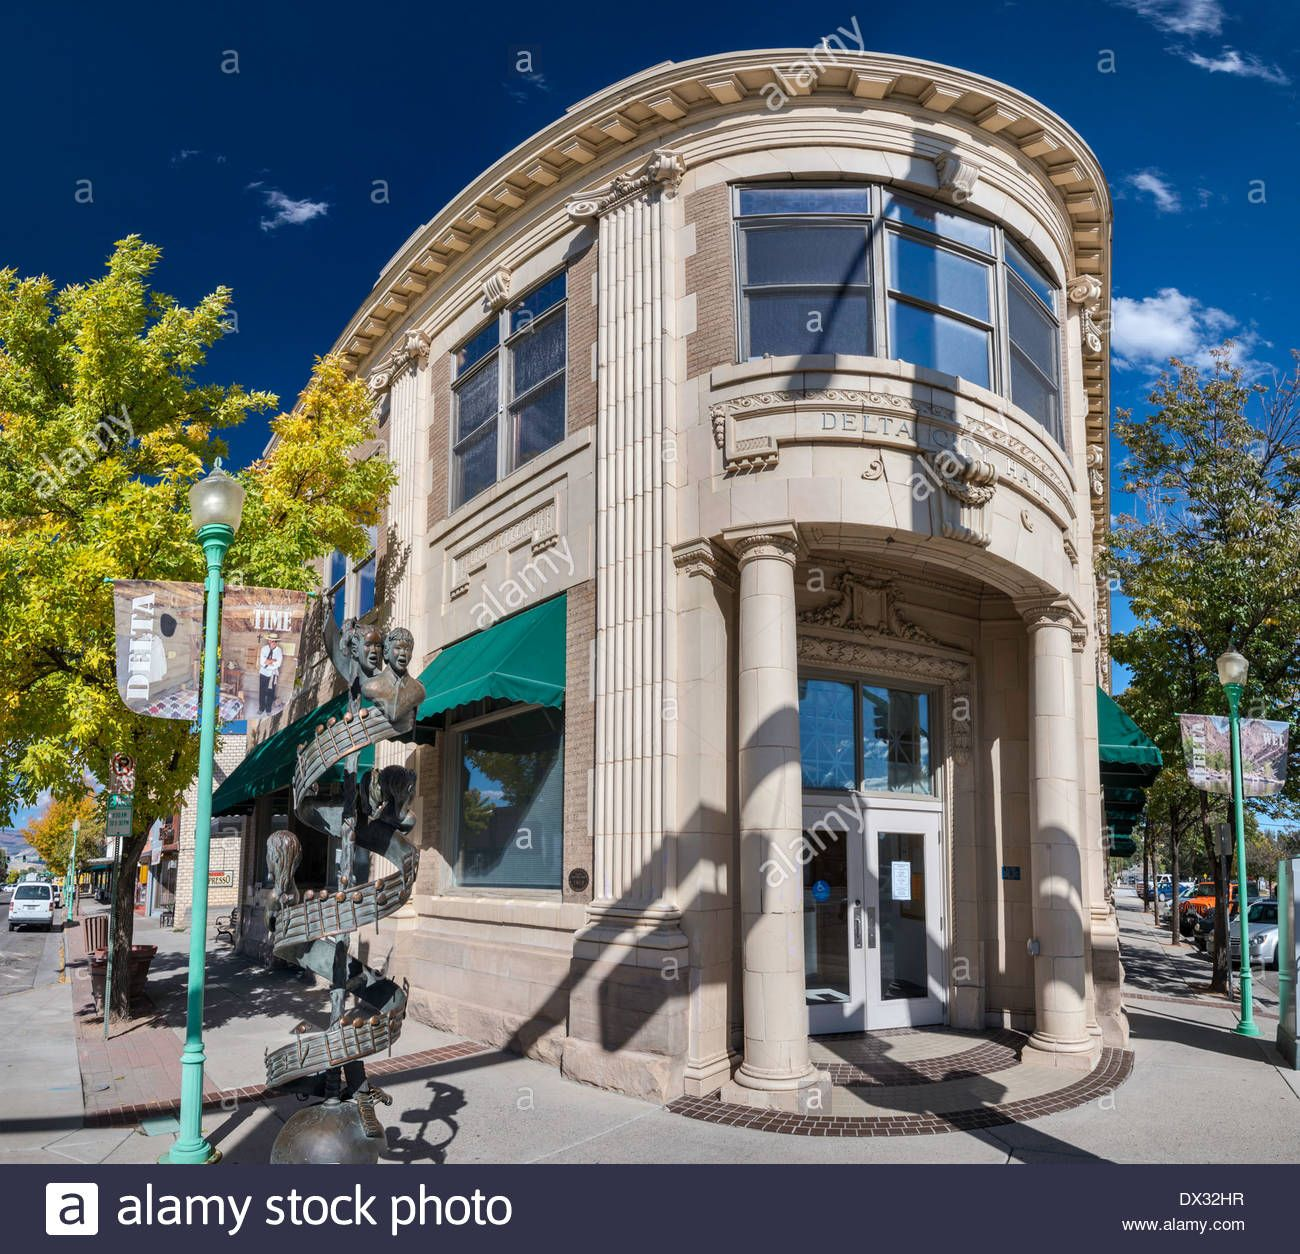 Download this stock image: Delta City Hall, sculpture by Tracy Y Munson on left, Main Street in Delta, Colorado, USA - DX32HR from Alamy's library of millions of high resolution stock photos, illustrations and vectors.